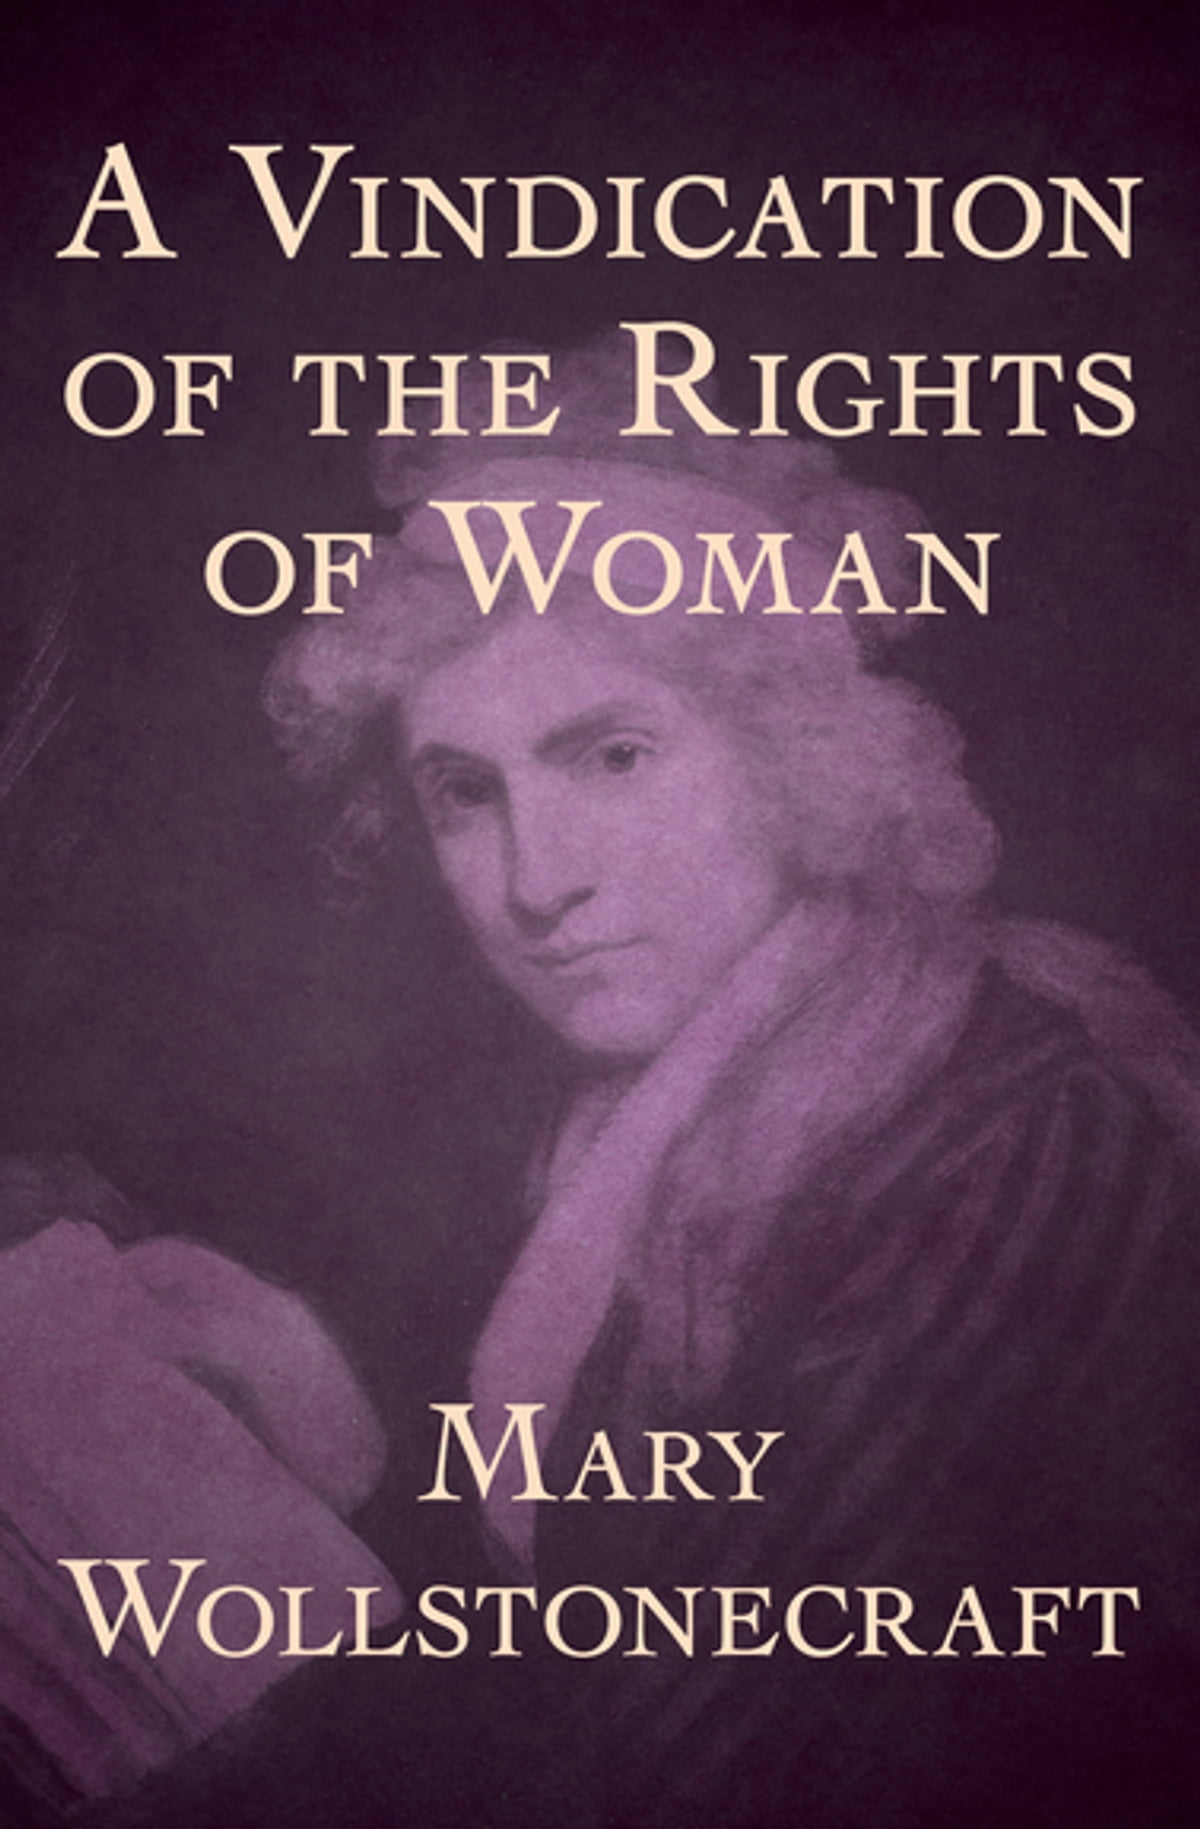 the ideas of feminism in a vindication of the rights of women a book by mary wollstonecraft Wollstonecraft is a founding mother of feminism and her most famous work, a vindication of the rights of woman (1792) is widely viewed as the first great feminist treatise she wrote in the classical liberal tradition, which promoted individual rights, especially against the restrictions of political power.